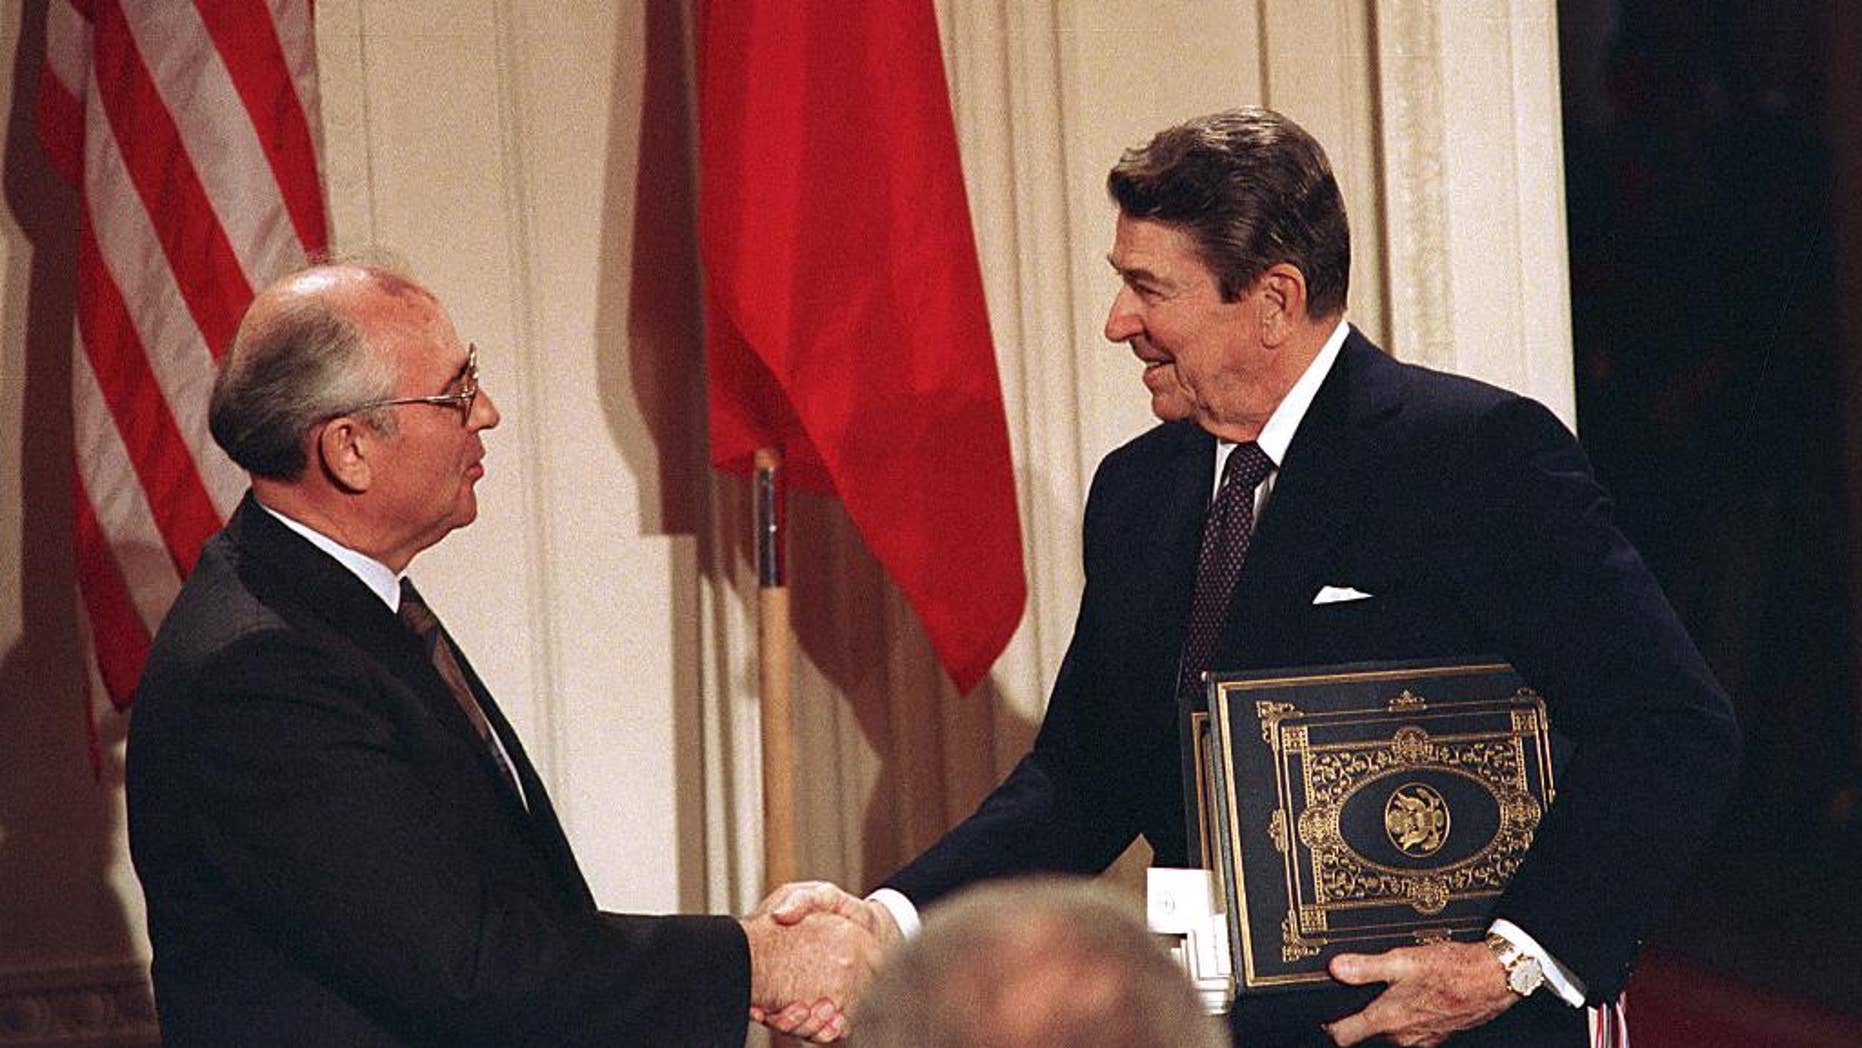 """FILE - Int this Dec. 8, 1987, file photo, U.S. President Ronald Reagan, right, shakes hands with Soviet leader Mikhail Gorbachev after the two leaders signed the Intermediate Range Nuclear Forces Treaty to eliminate intermediate-range missiles during a ceremony in the White House East Room in Washington. In an escalation of tensions, the Obama administration accused Russia on July 28, 2014, of conducting tests in violation of a 1987 nuclear missile treaty, calling the breach """"a very serious matter"""" and going public with allegations that have simmered for some time. The treaty confrontation comes at a highly strained time between President Barack Obama and Russian President Vladimir Putin over Russia's intervention in Ukraine and Russia's grant of asylum to National Security Agency leaker Edward Snowden.(AP Photo/Bob Daugherty, File)"""